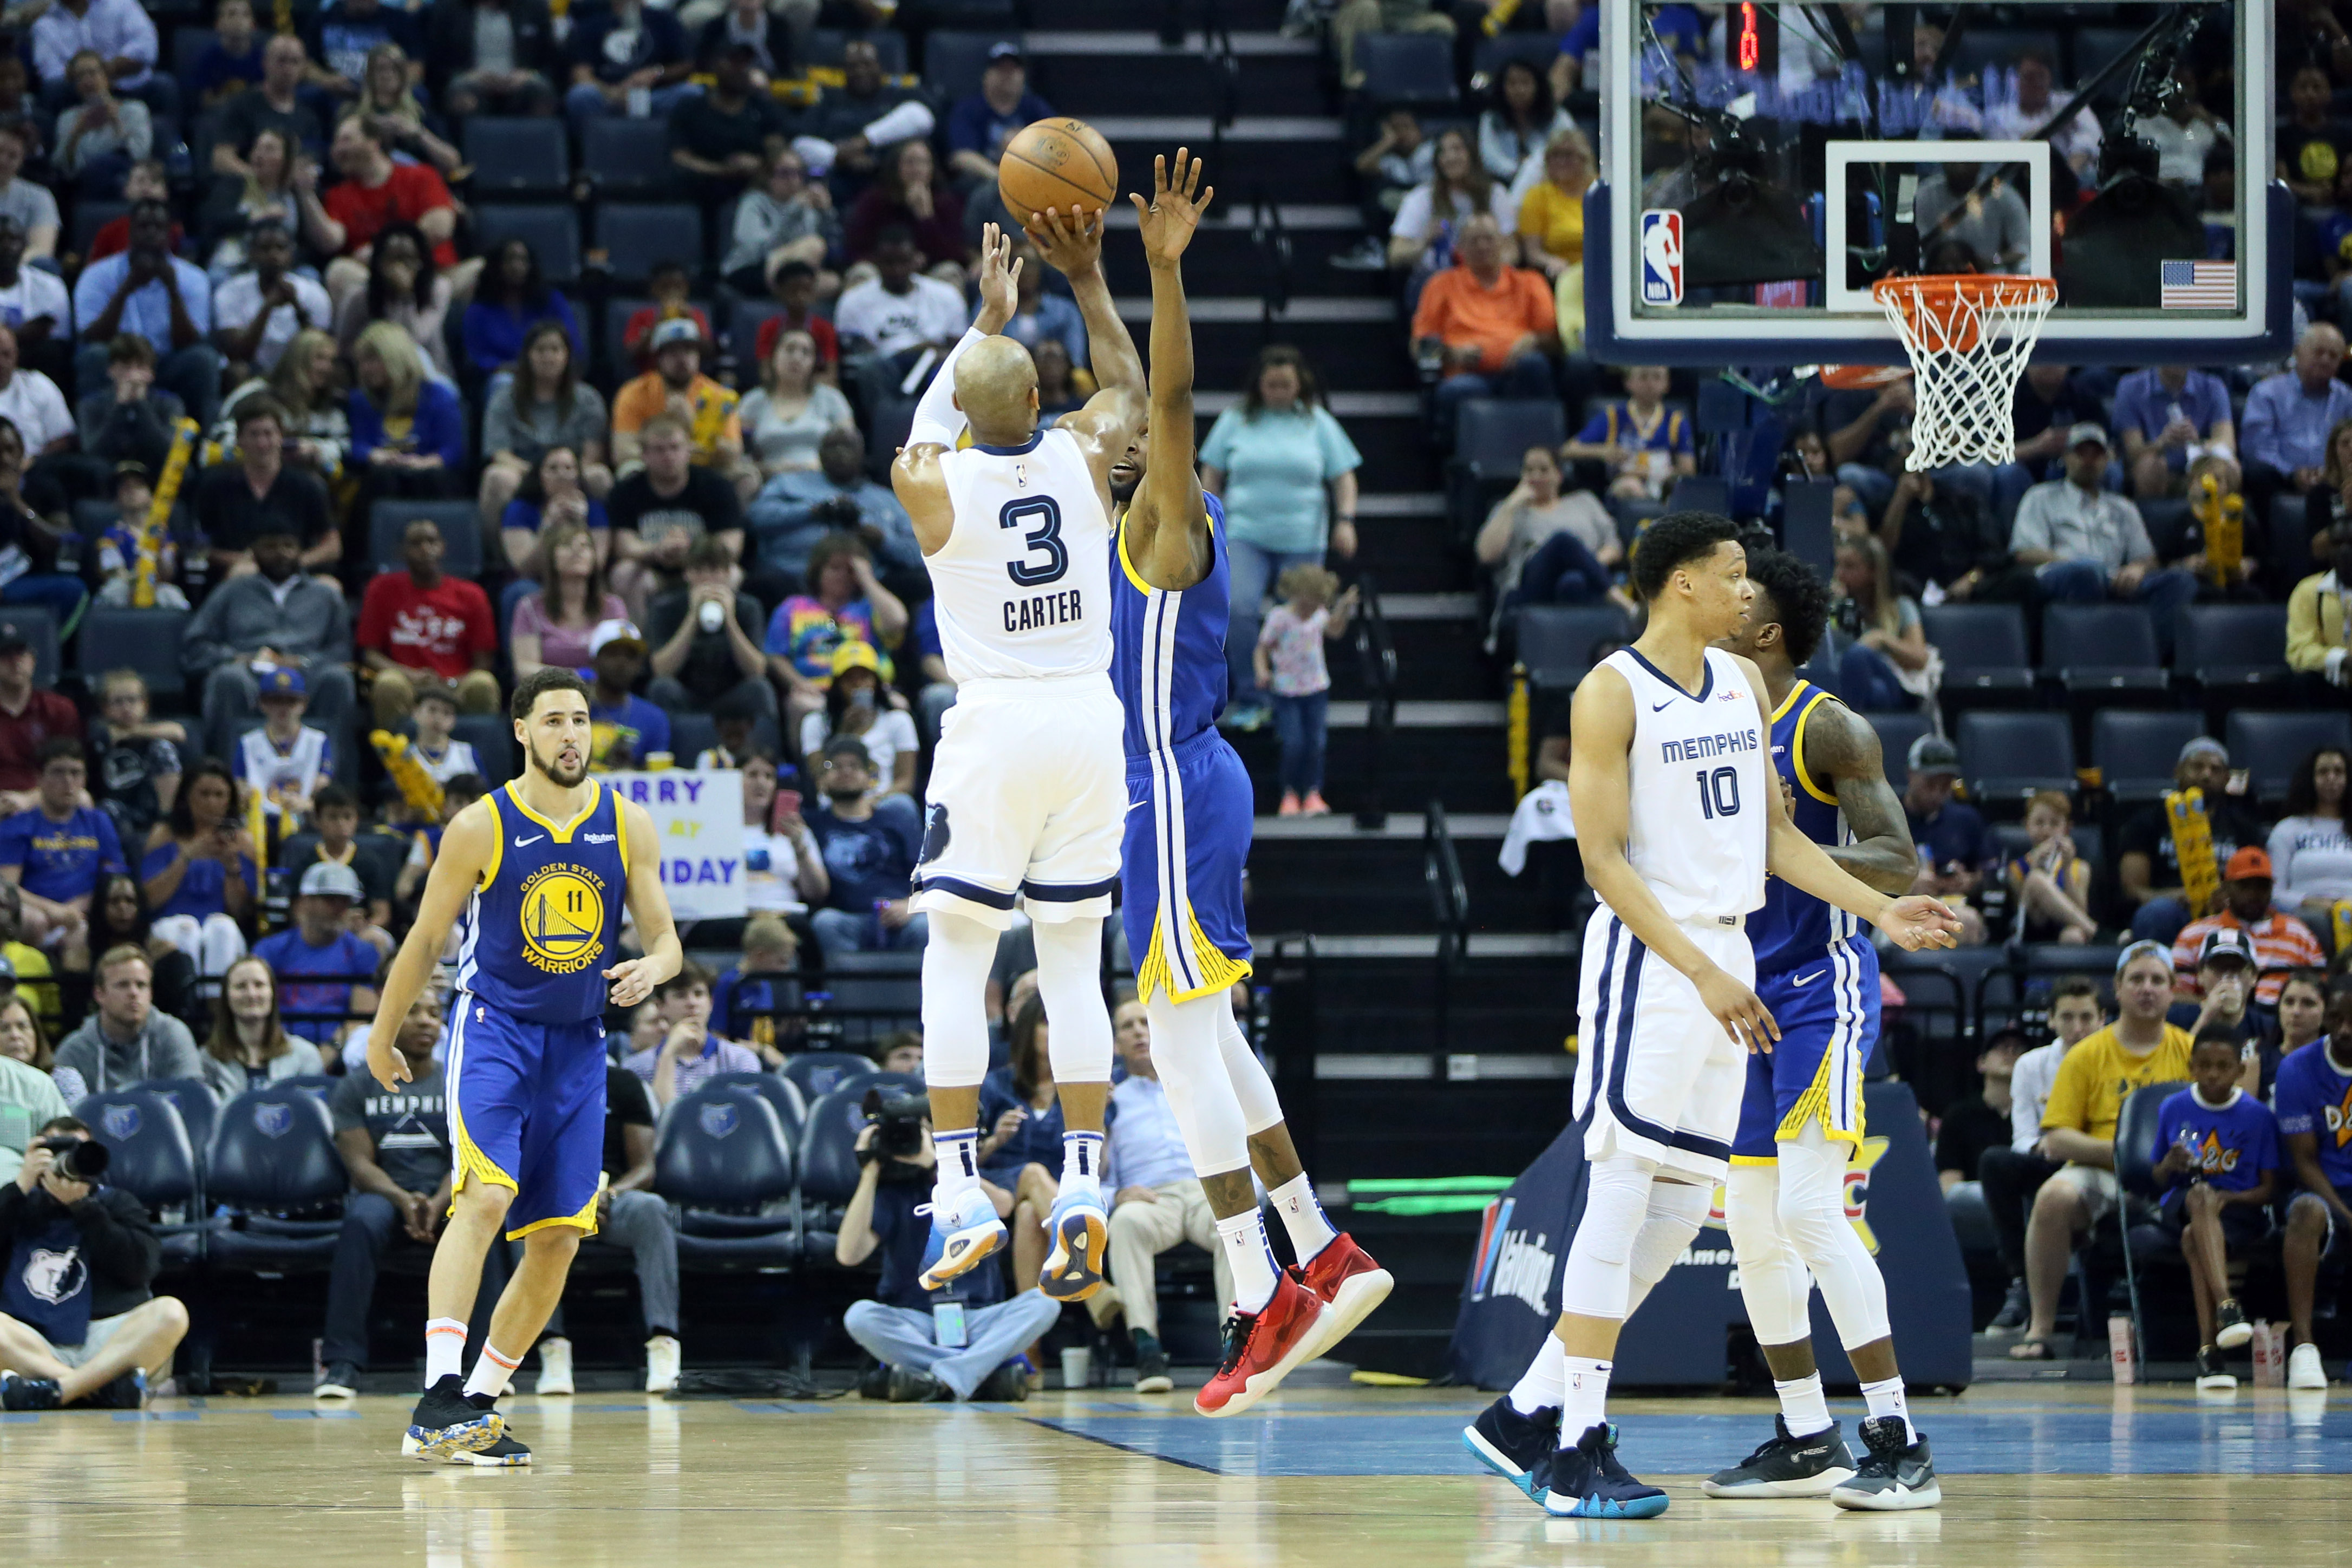 d9e18ad96df Grizzlies wrap up randomly disappointing season with blowout win over  Warriors